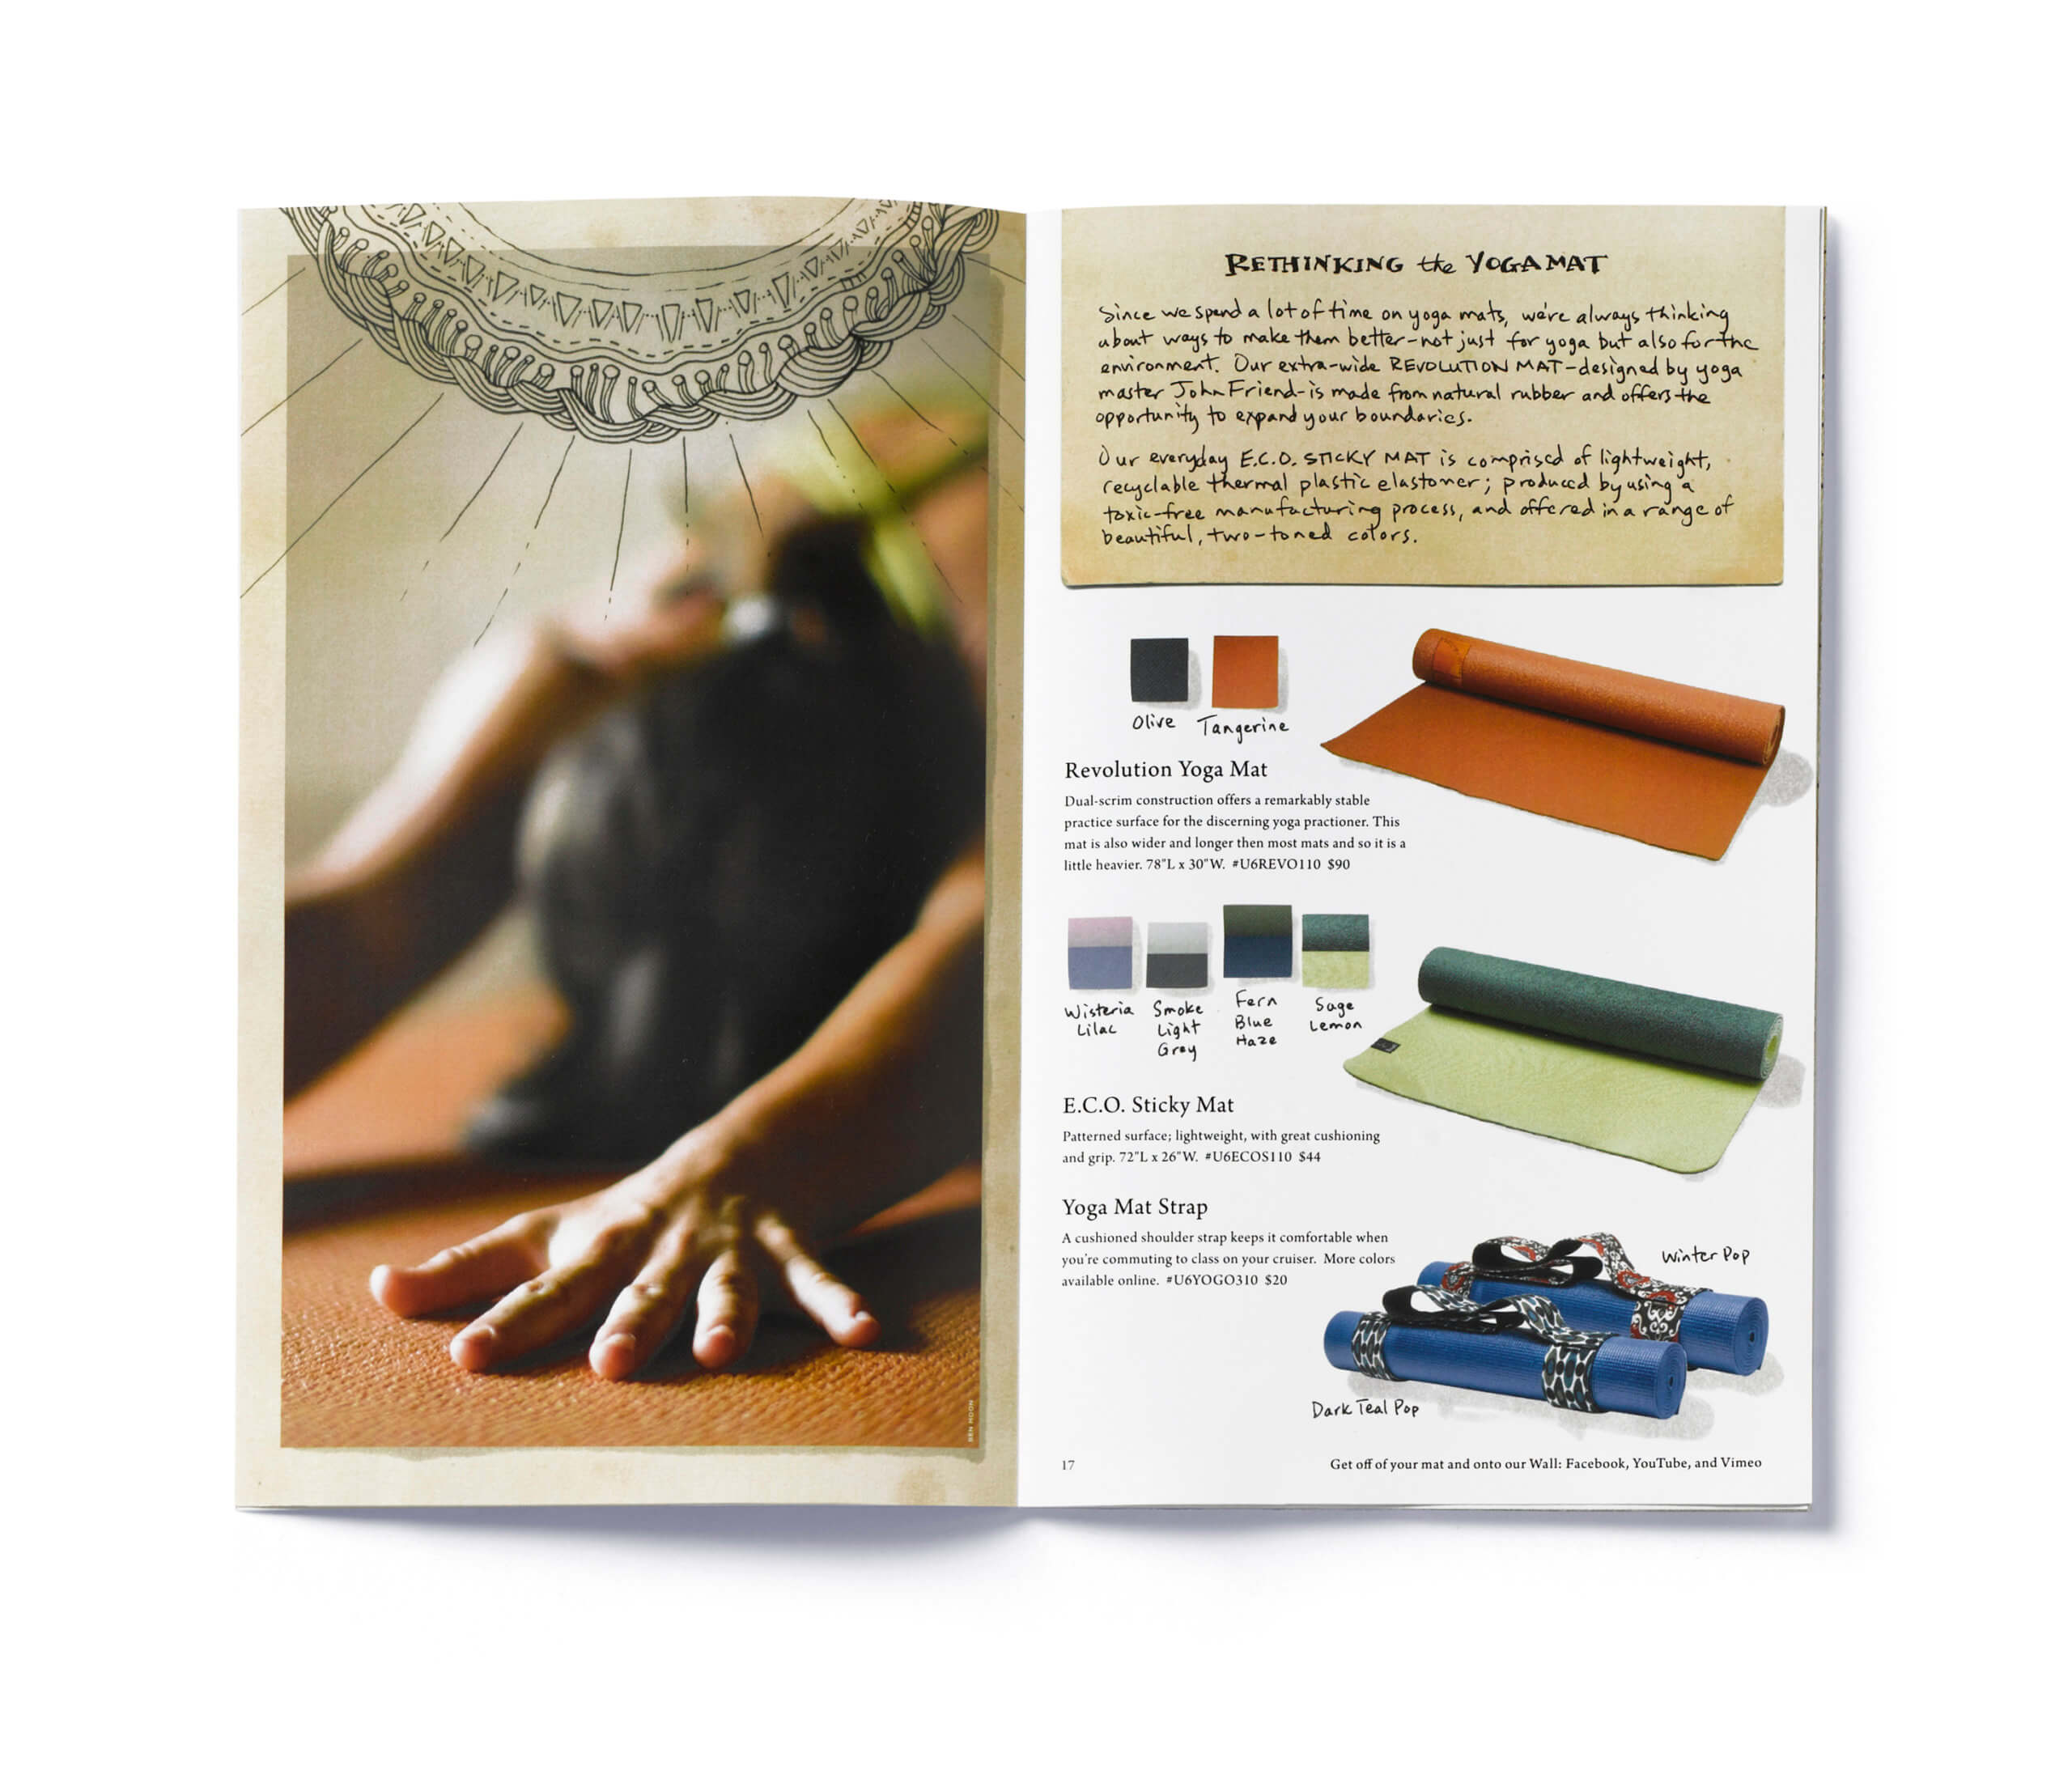 Open catalog showing yoga pose and colorful yoga mats